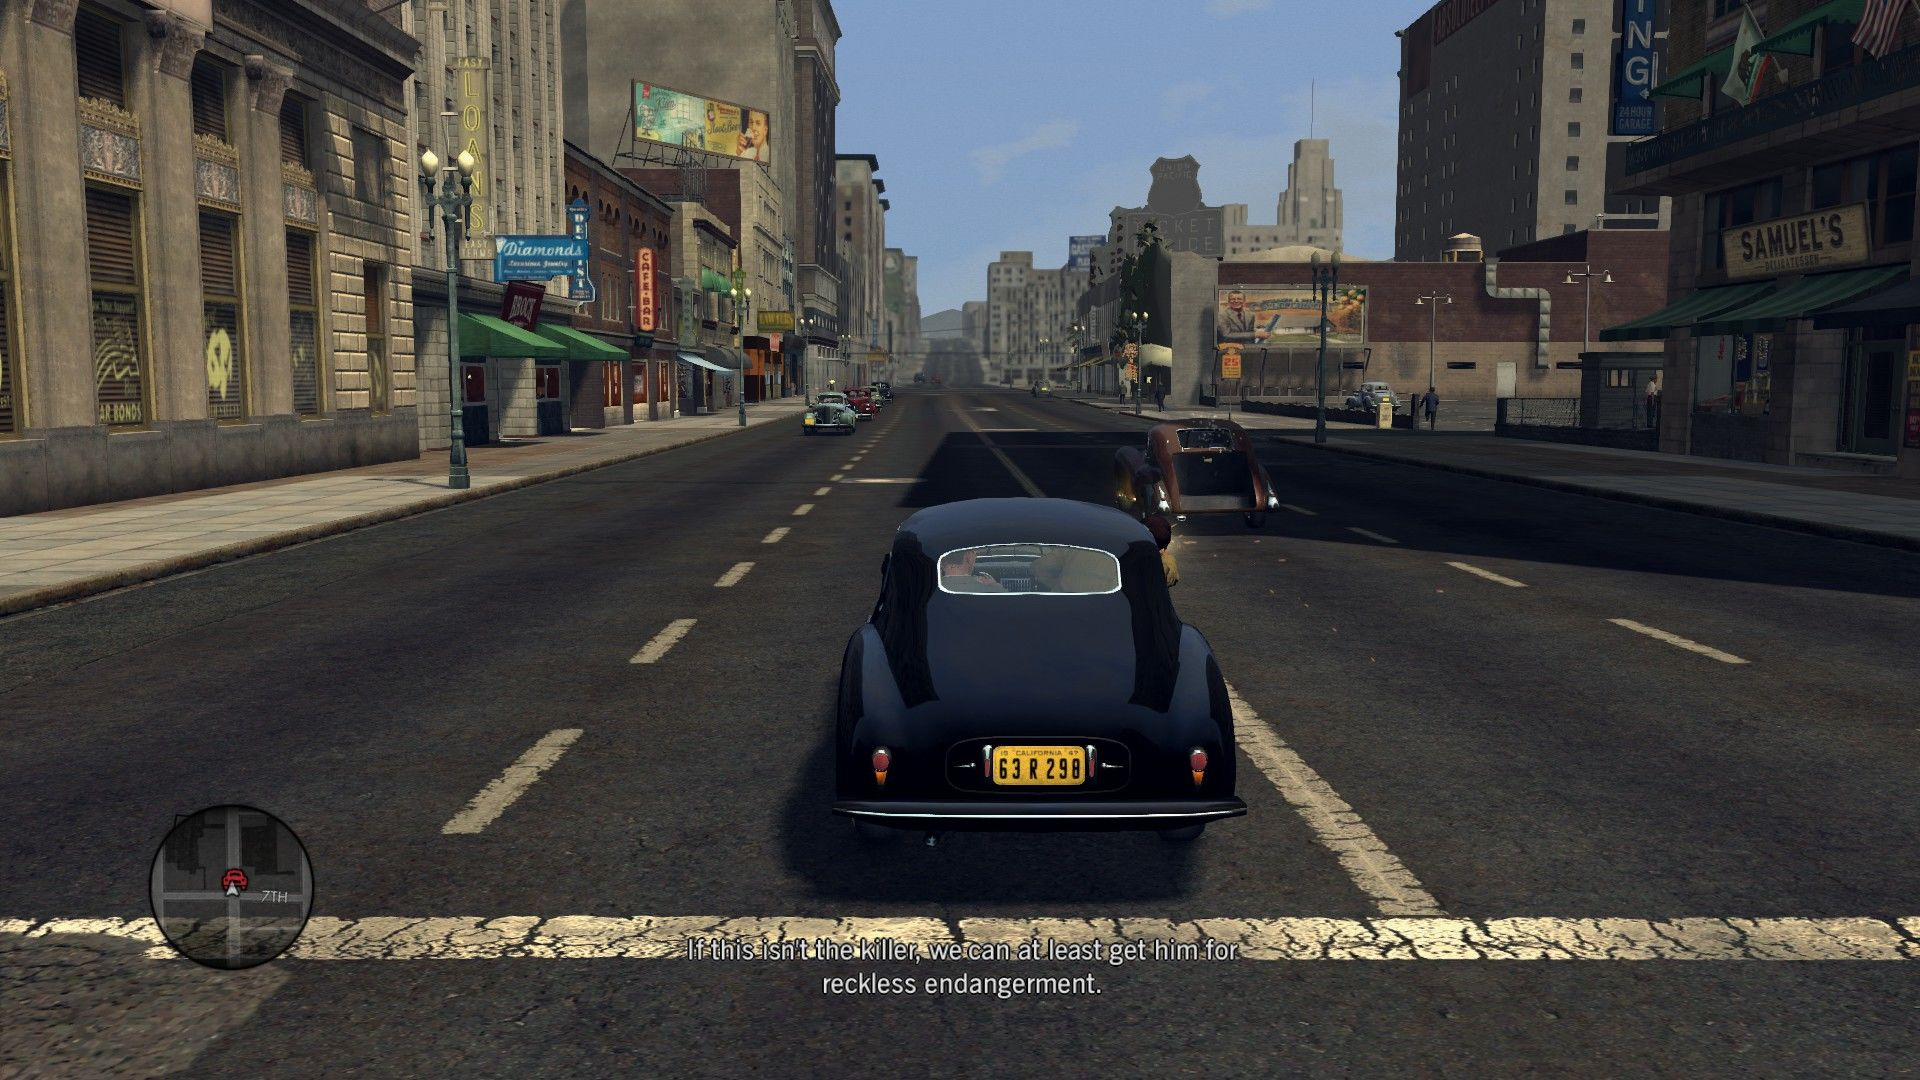 L.A. Noire: The Complete Edition Windows The travels by car are essential parts of the game to hear the conversations with your partner, but it's possible to skip them.